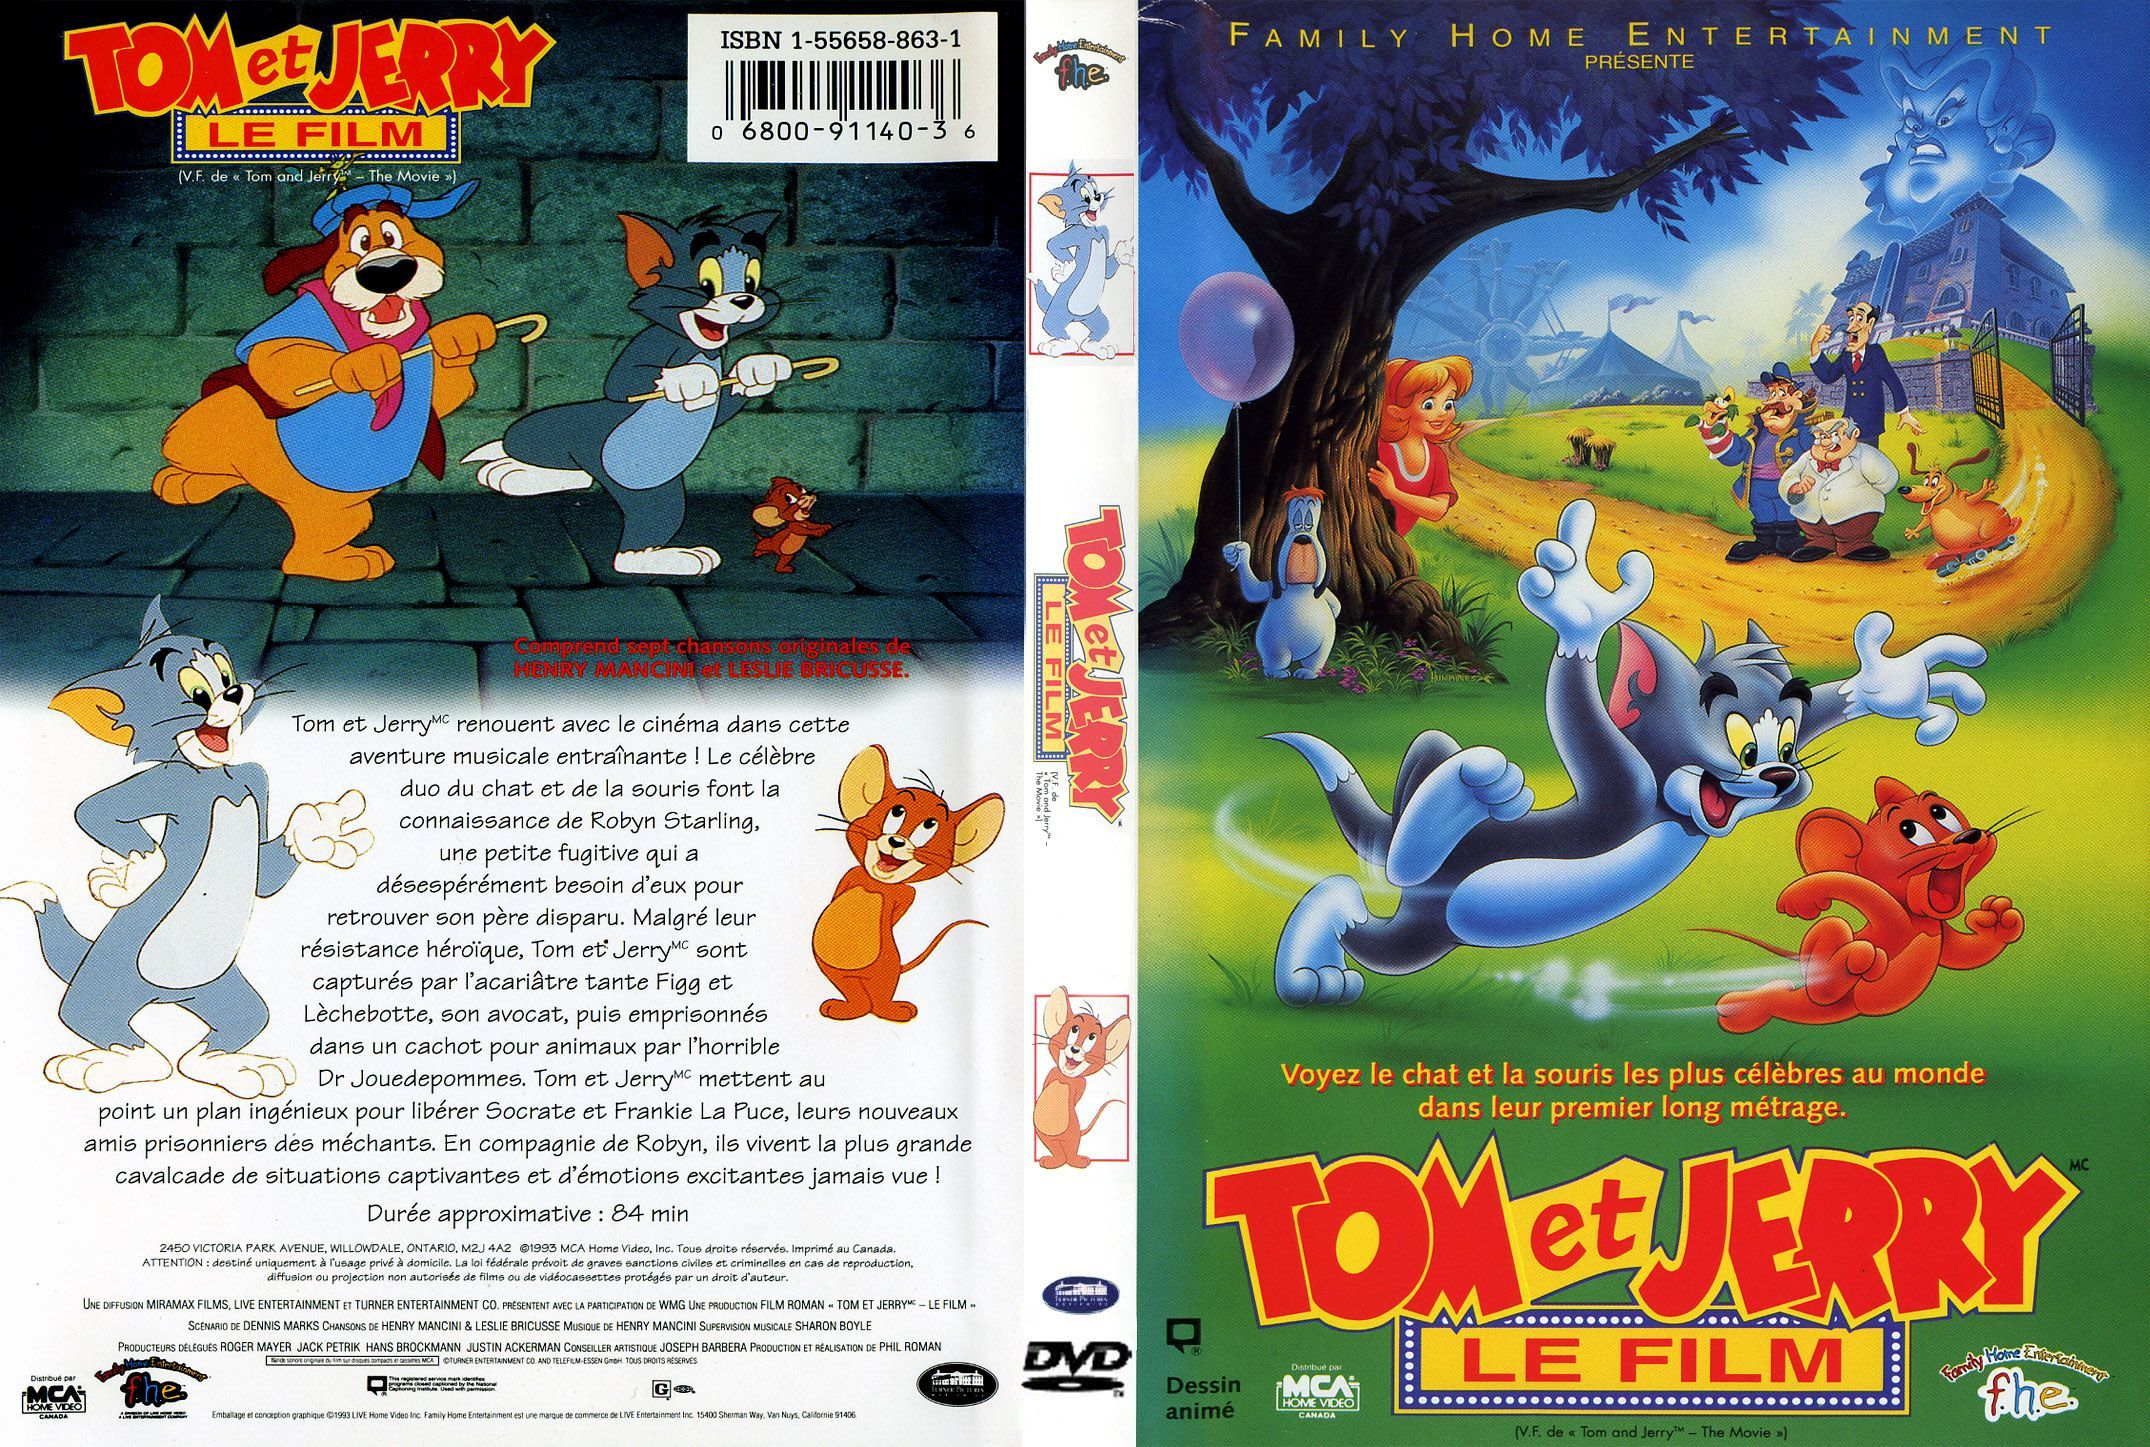 Tom And Jerry 1992 Wallpapers - Wallpaper Cave